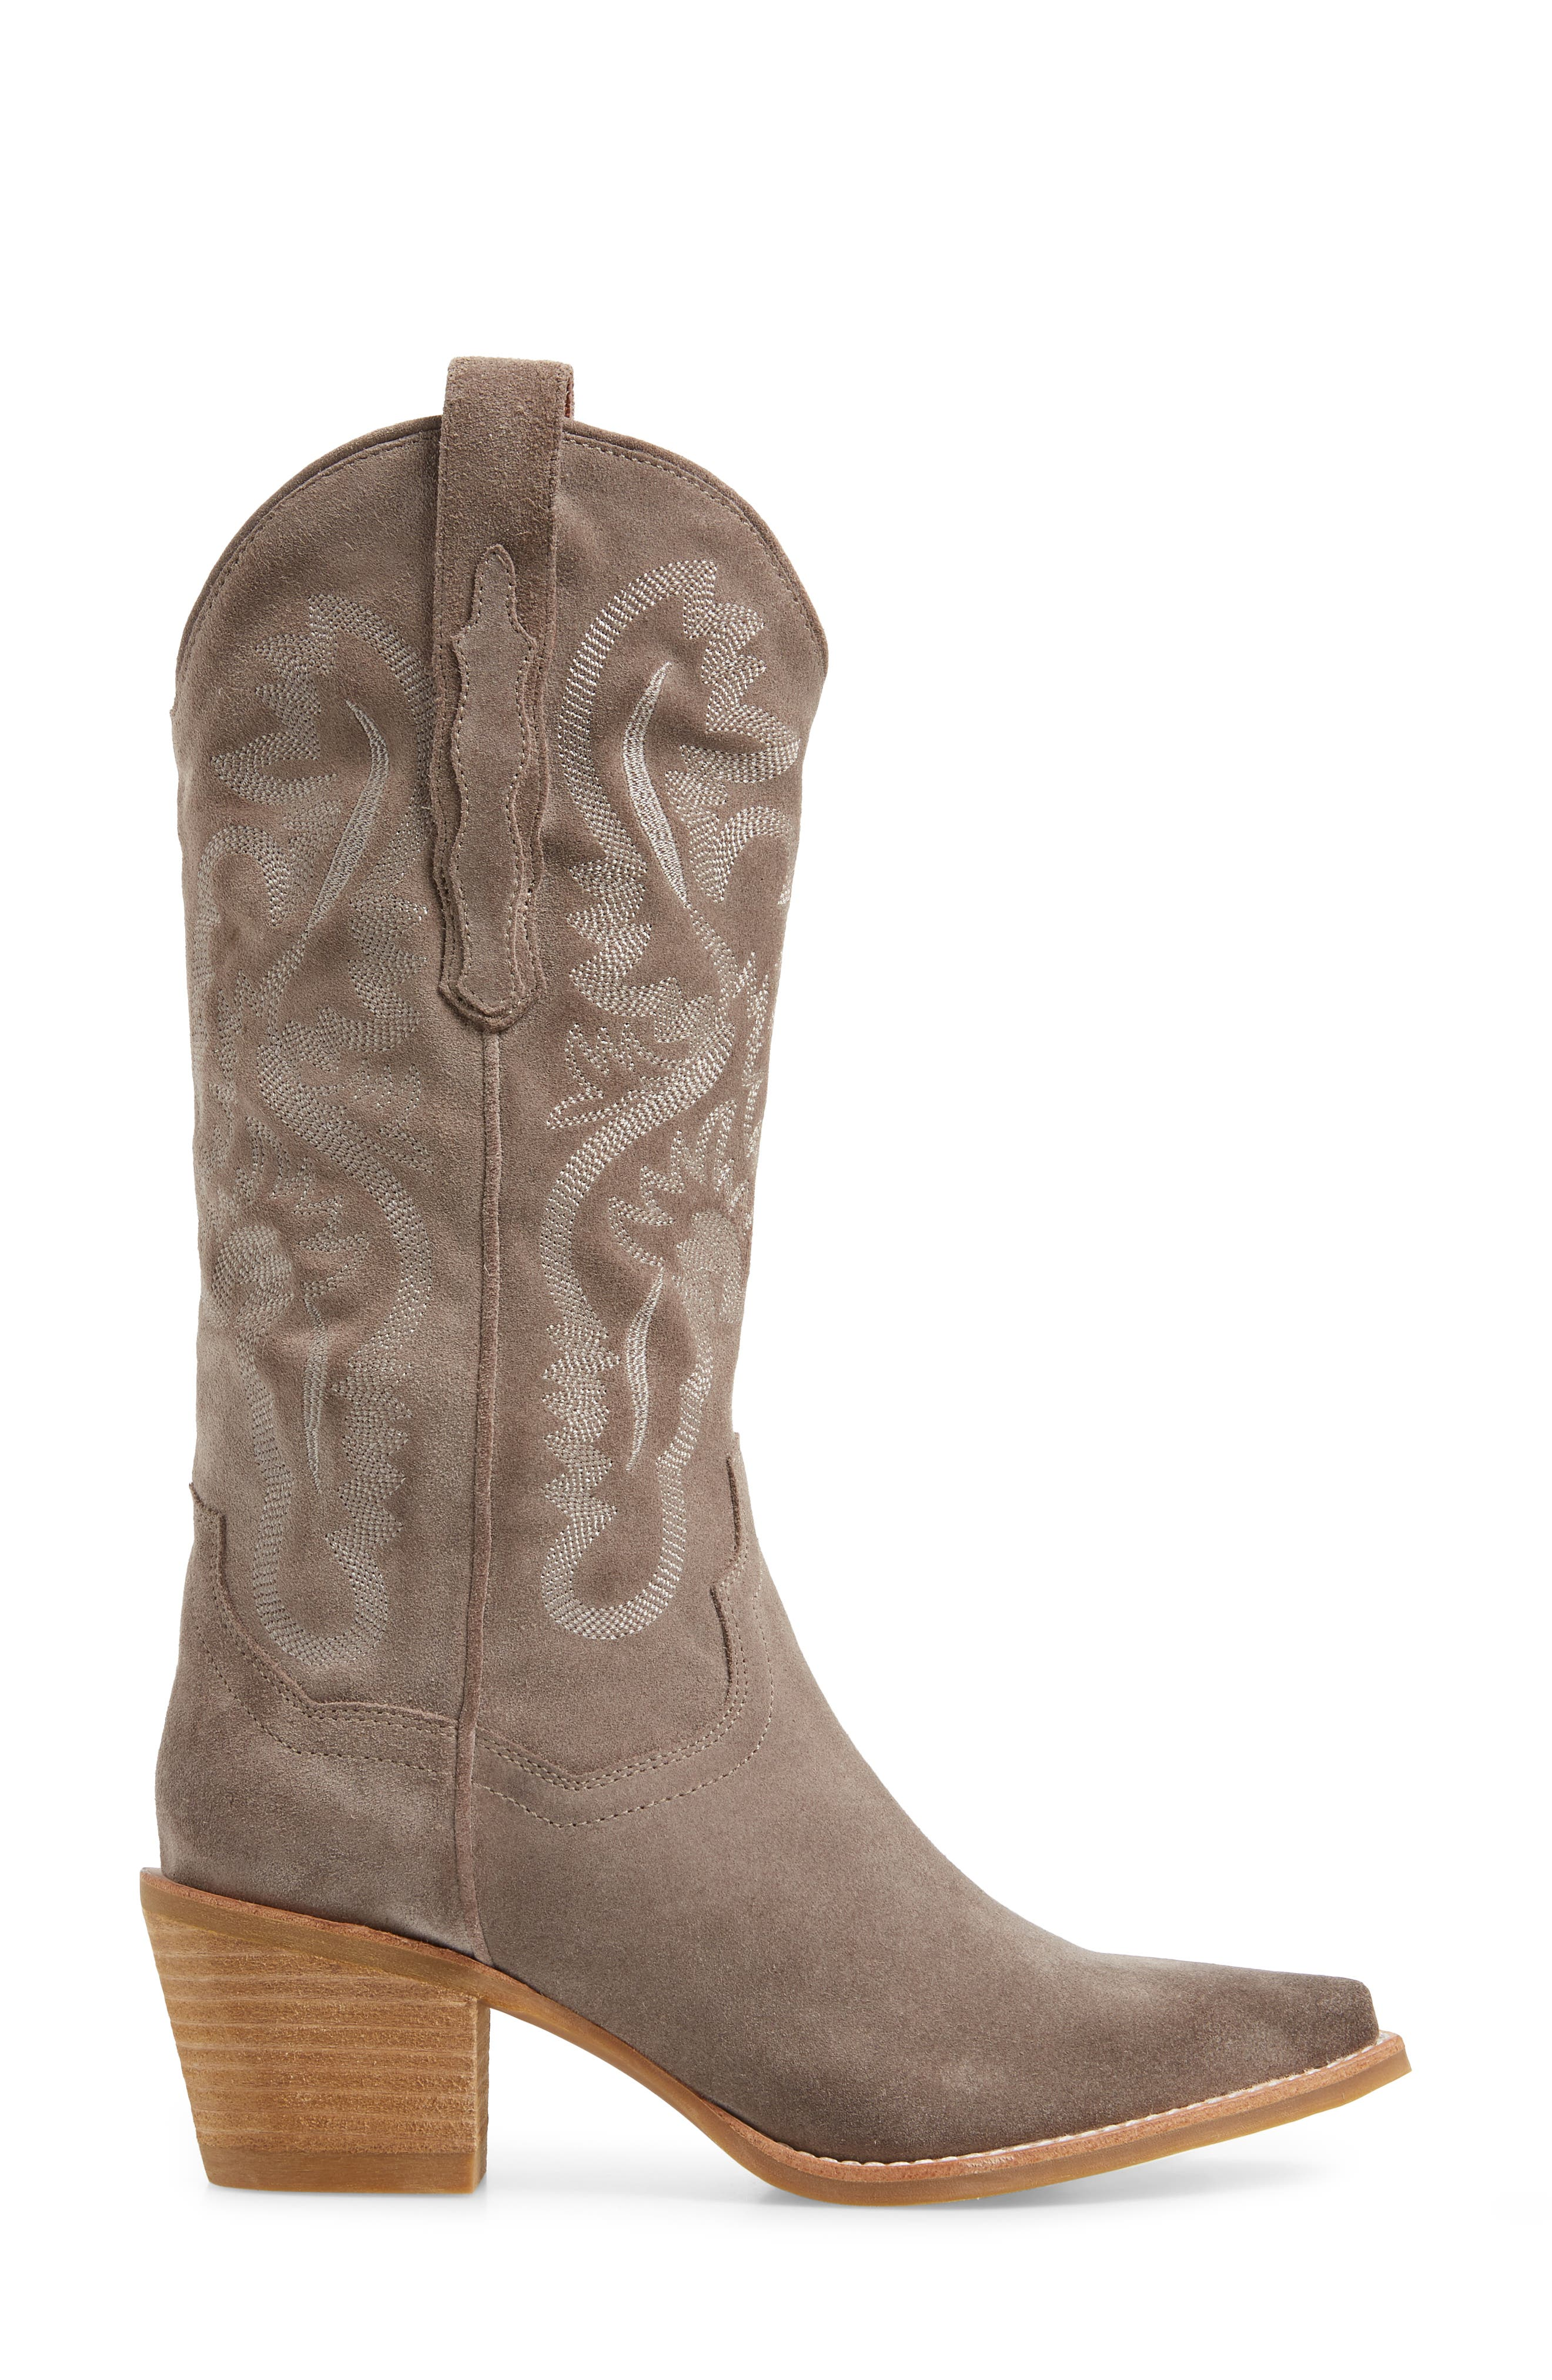 Dagget Western Boot,                             Alternate thumbnail 3, color,                             TAUPE SUEDE